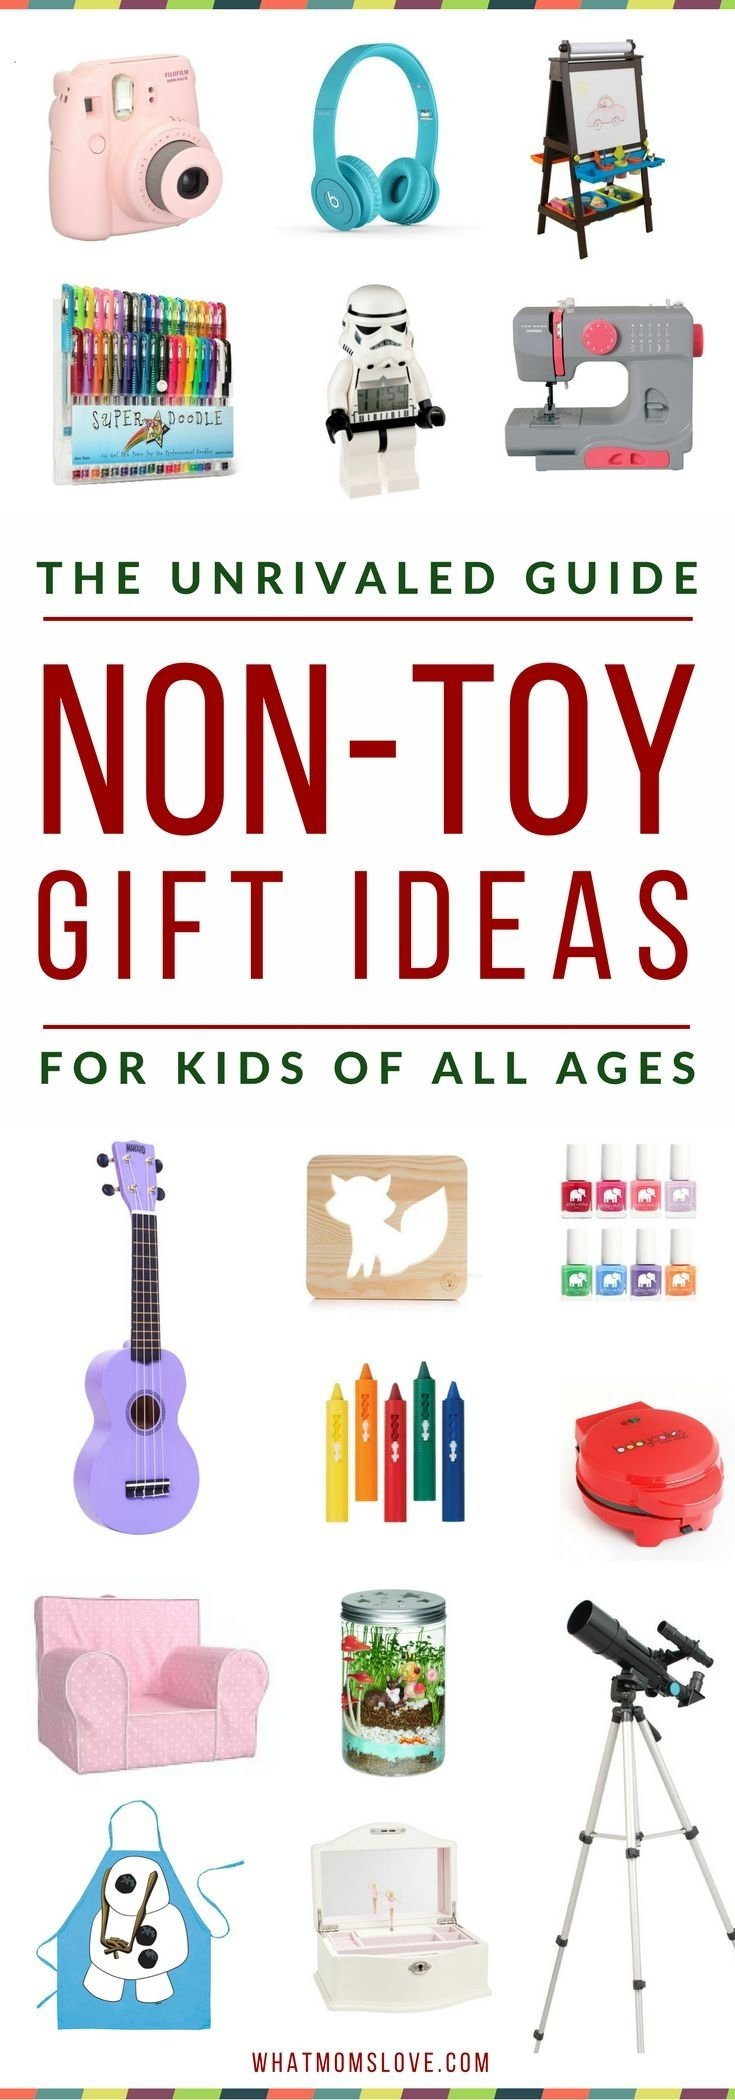 10 Attractive Christmas Gift Ideas For Kids Who Have Everything 48 best gift ideas for teens images on pinterest christmas 5 2020